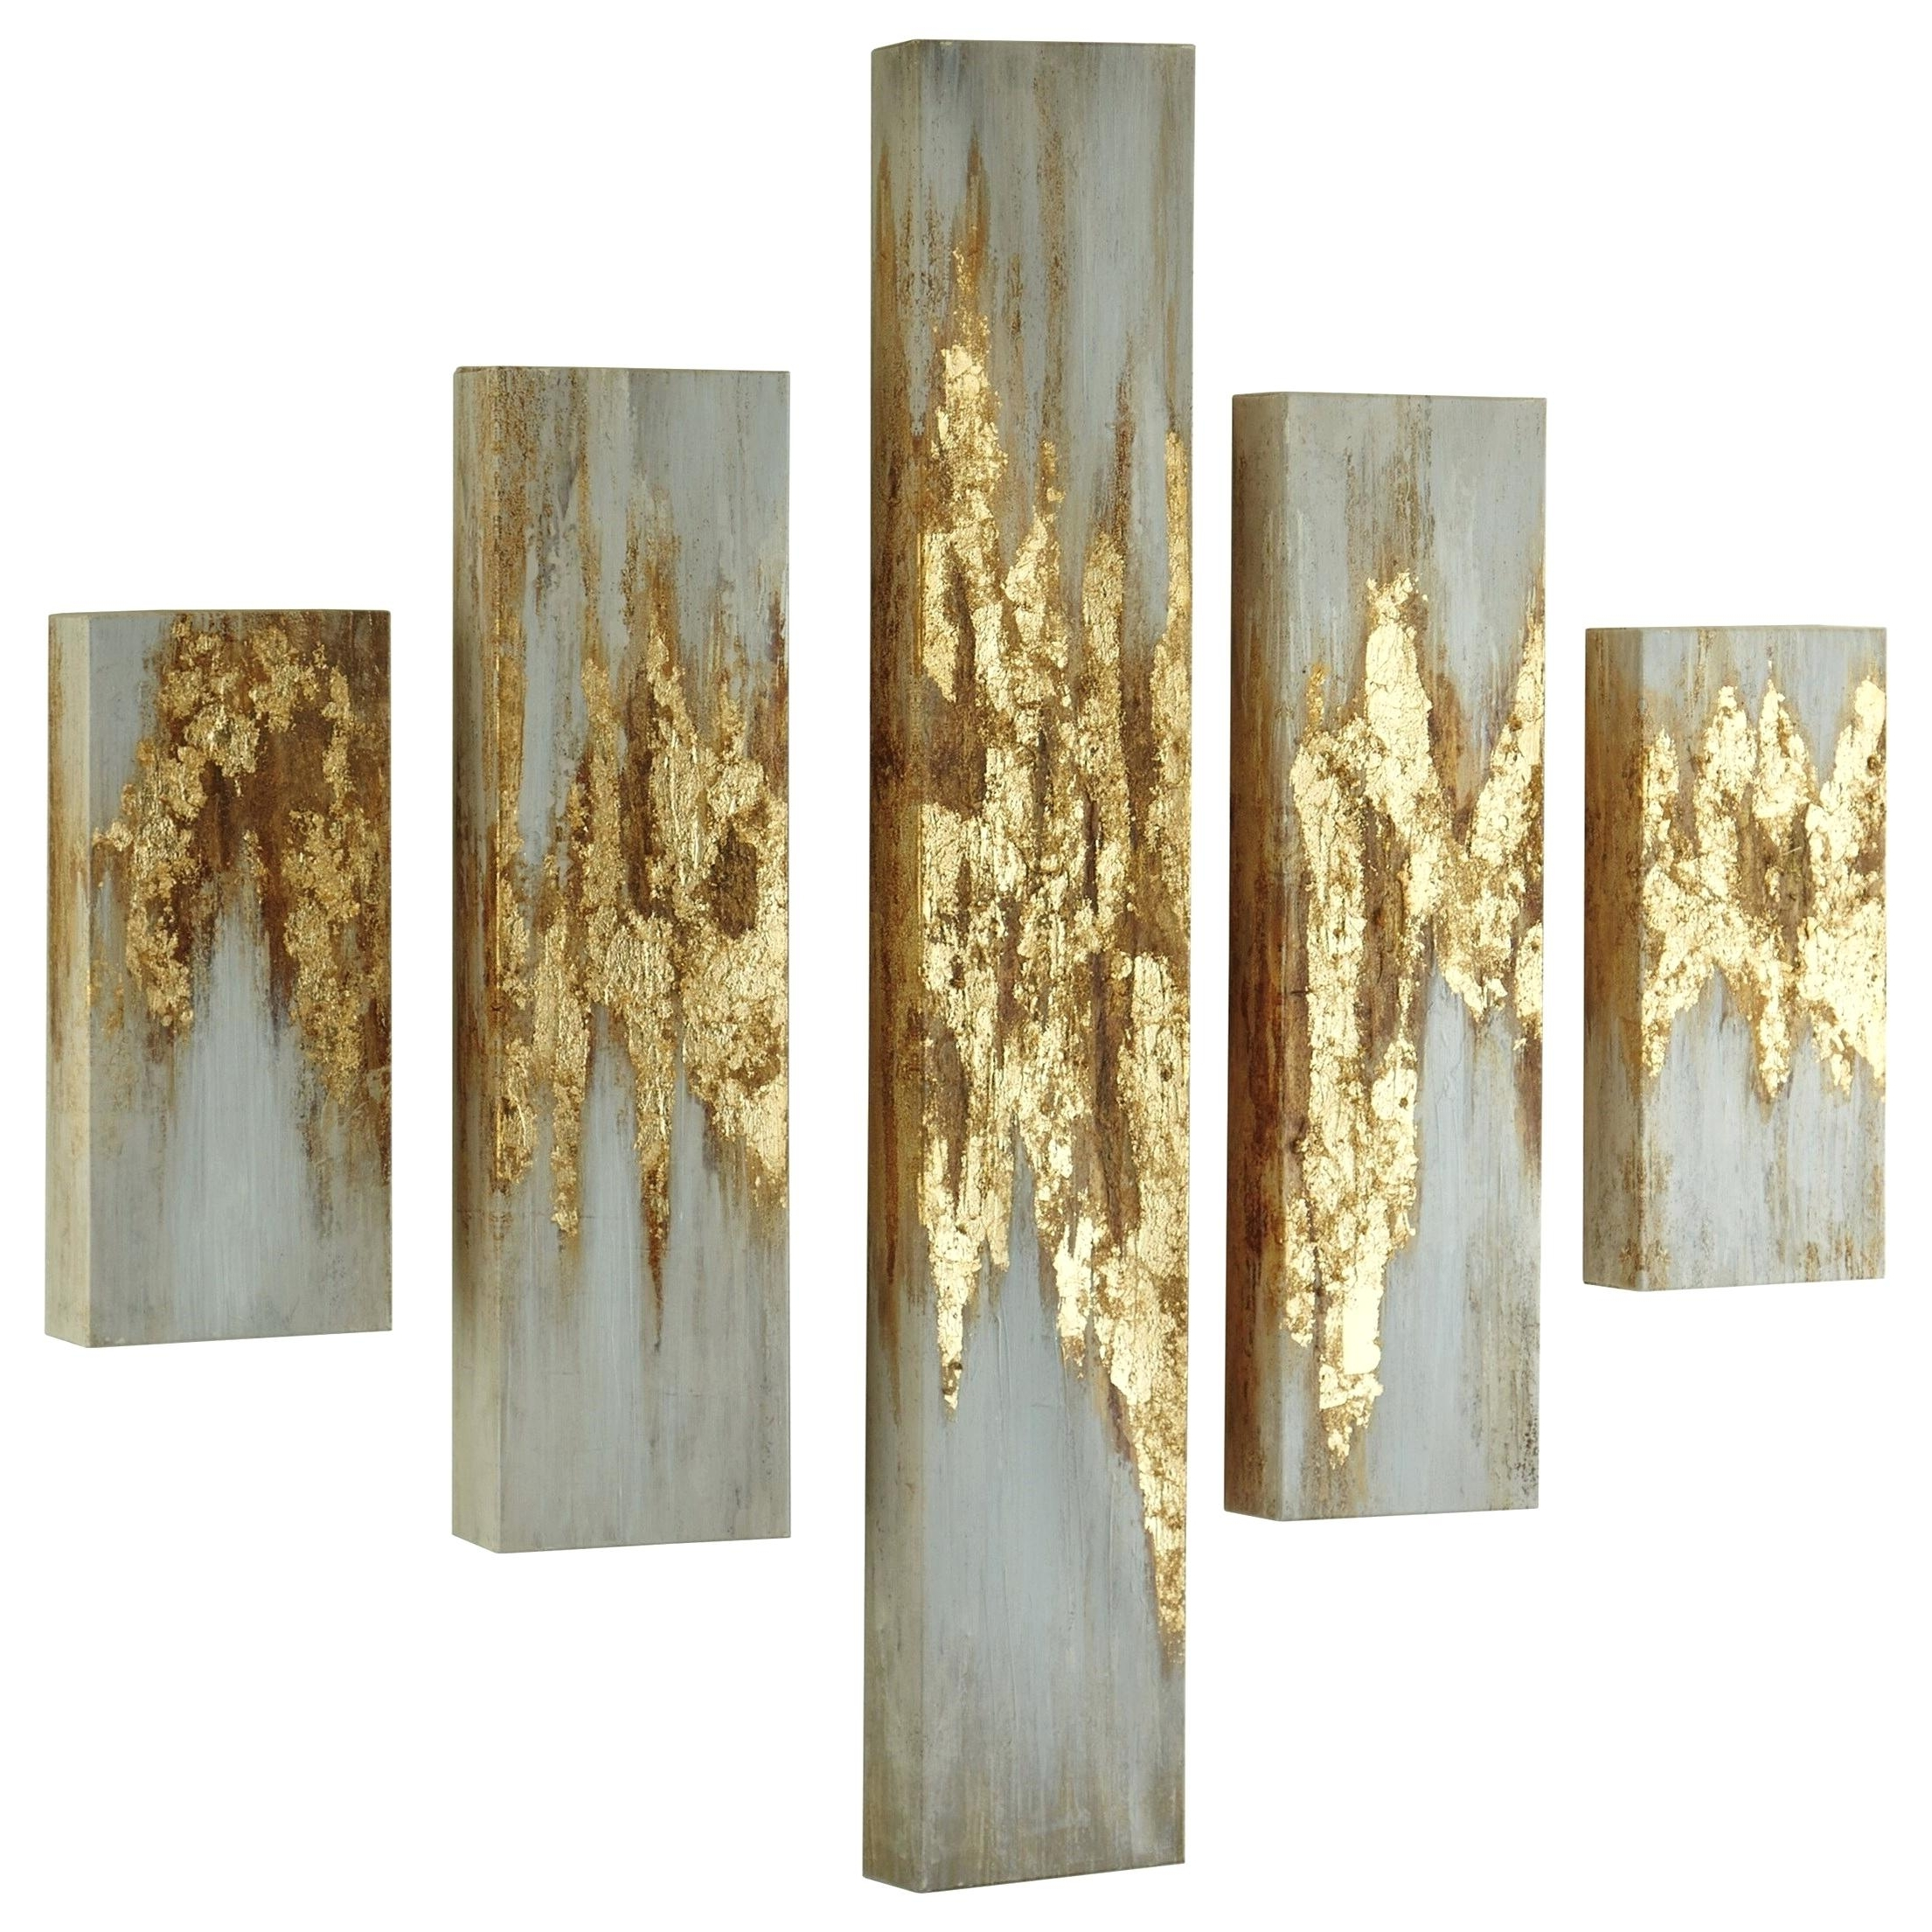 Ashley Wall Signature Designwall Art Gold Finish White Wall Art Intended For Most Recent Ashley Furniture Wall Art (View 5 of 15)